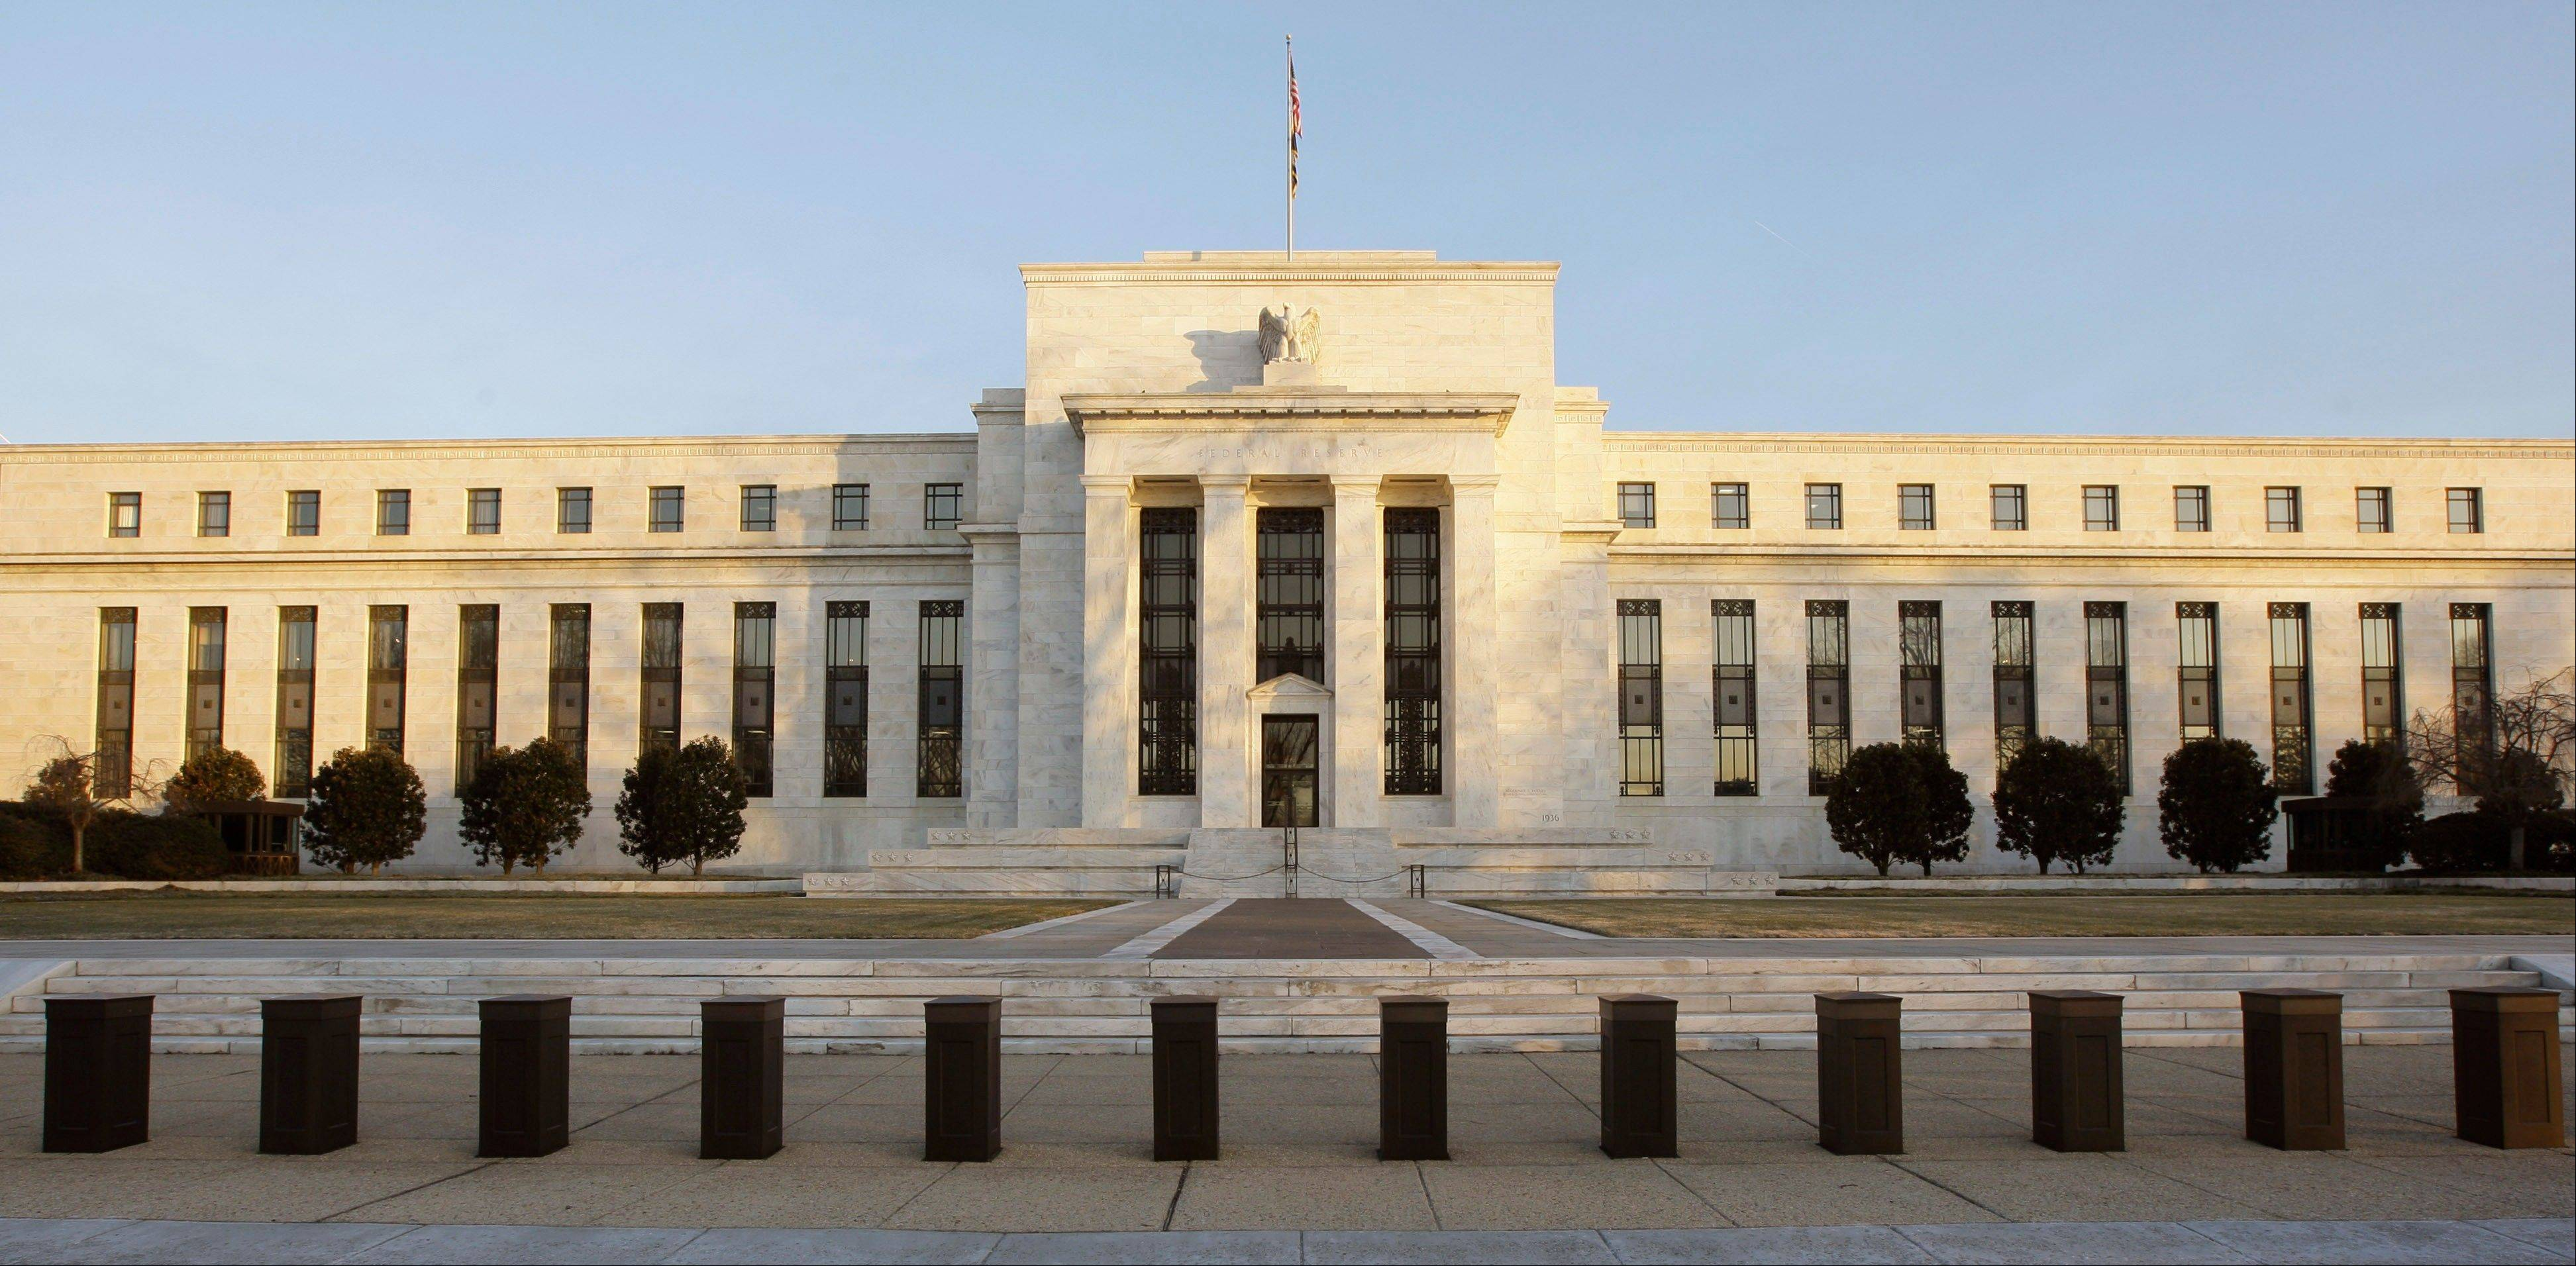 The Federal Reserve Building in Washington. Don�t expect the Federal Reserve to let up in its drive to keep stimulating the economy with record-low interest rates. Not yet, anyway.